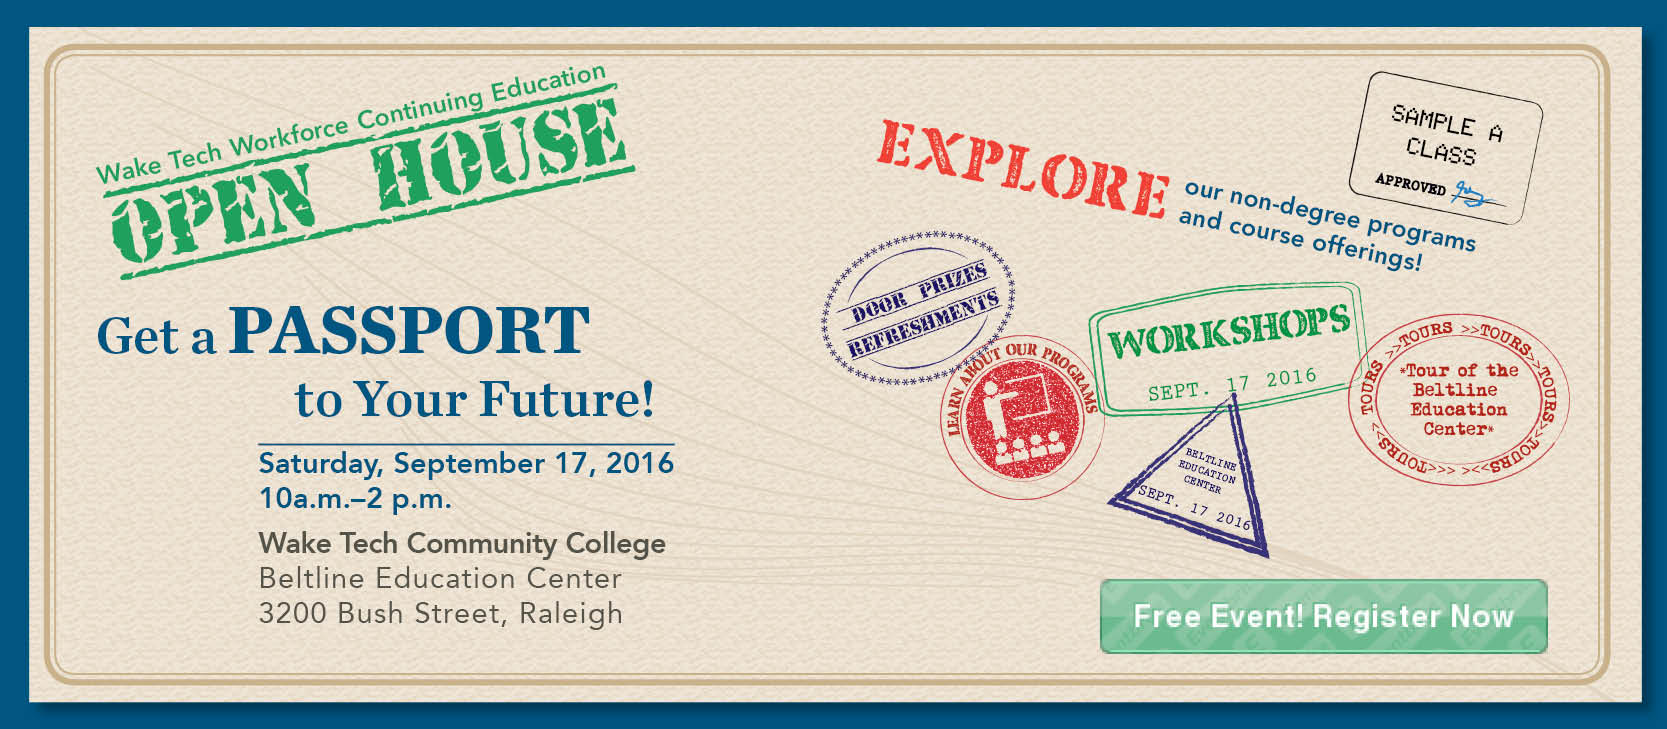 Wake Tech Workforce Continuing Education Open House